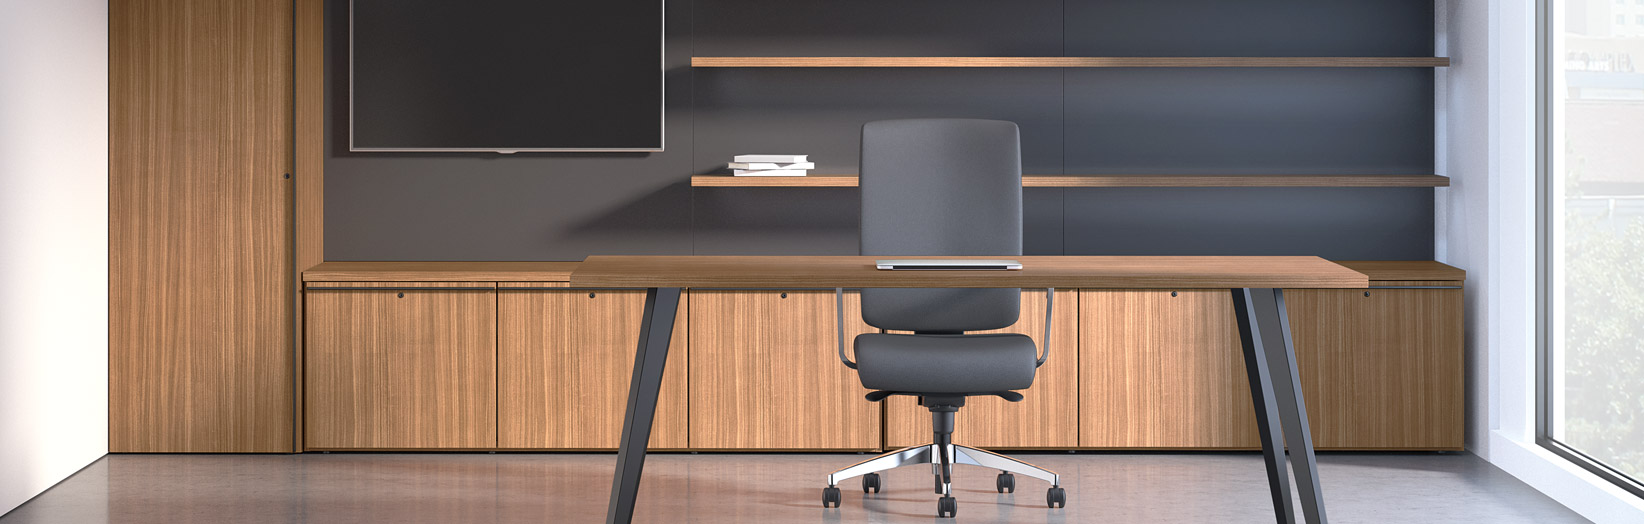 office furniture photos. Private Office Furniture Photos E